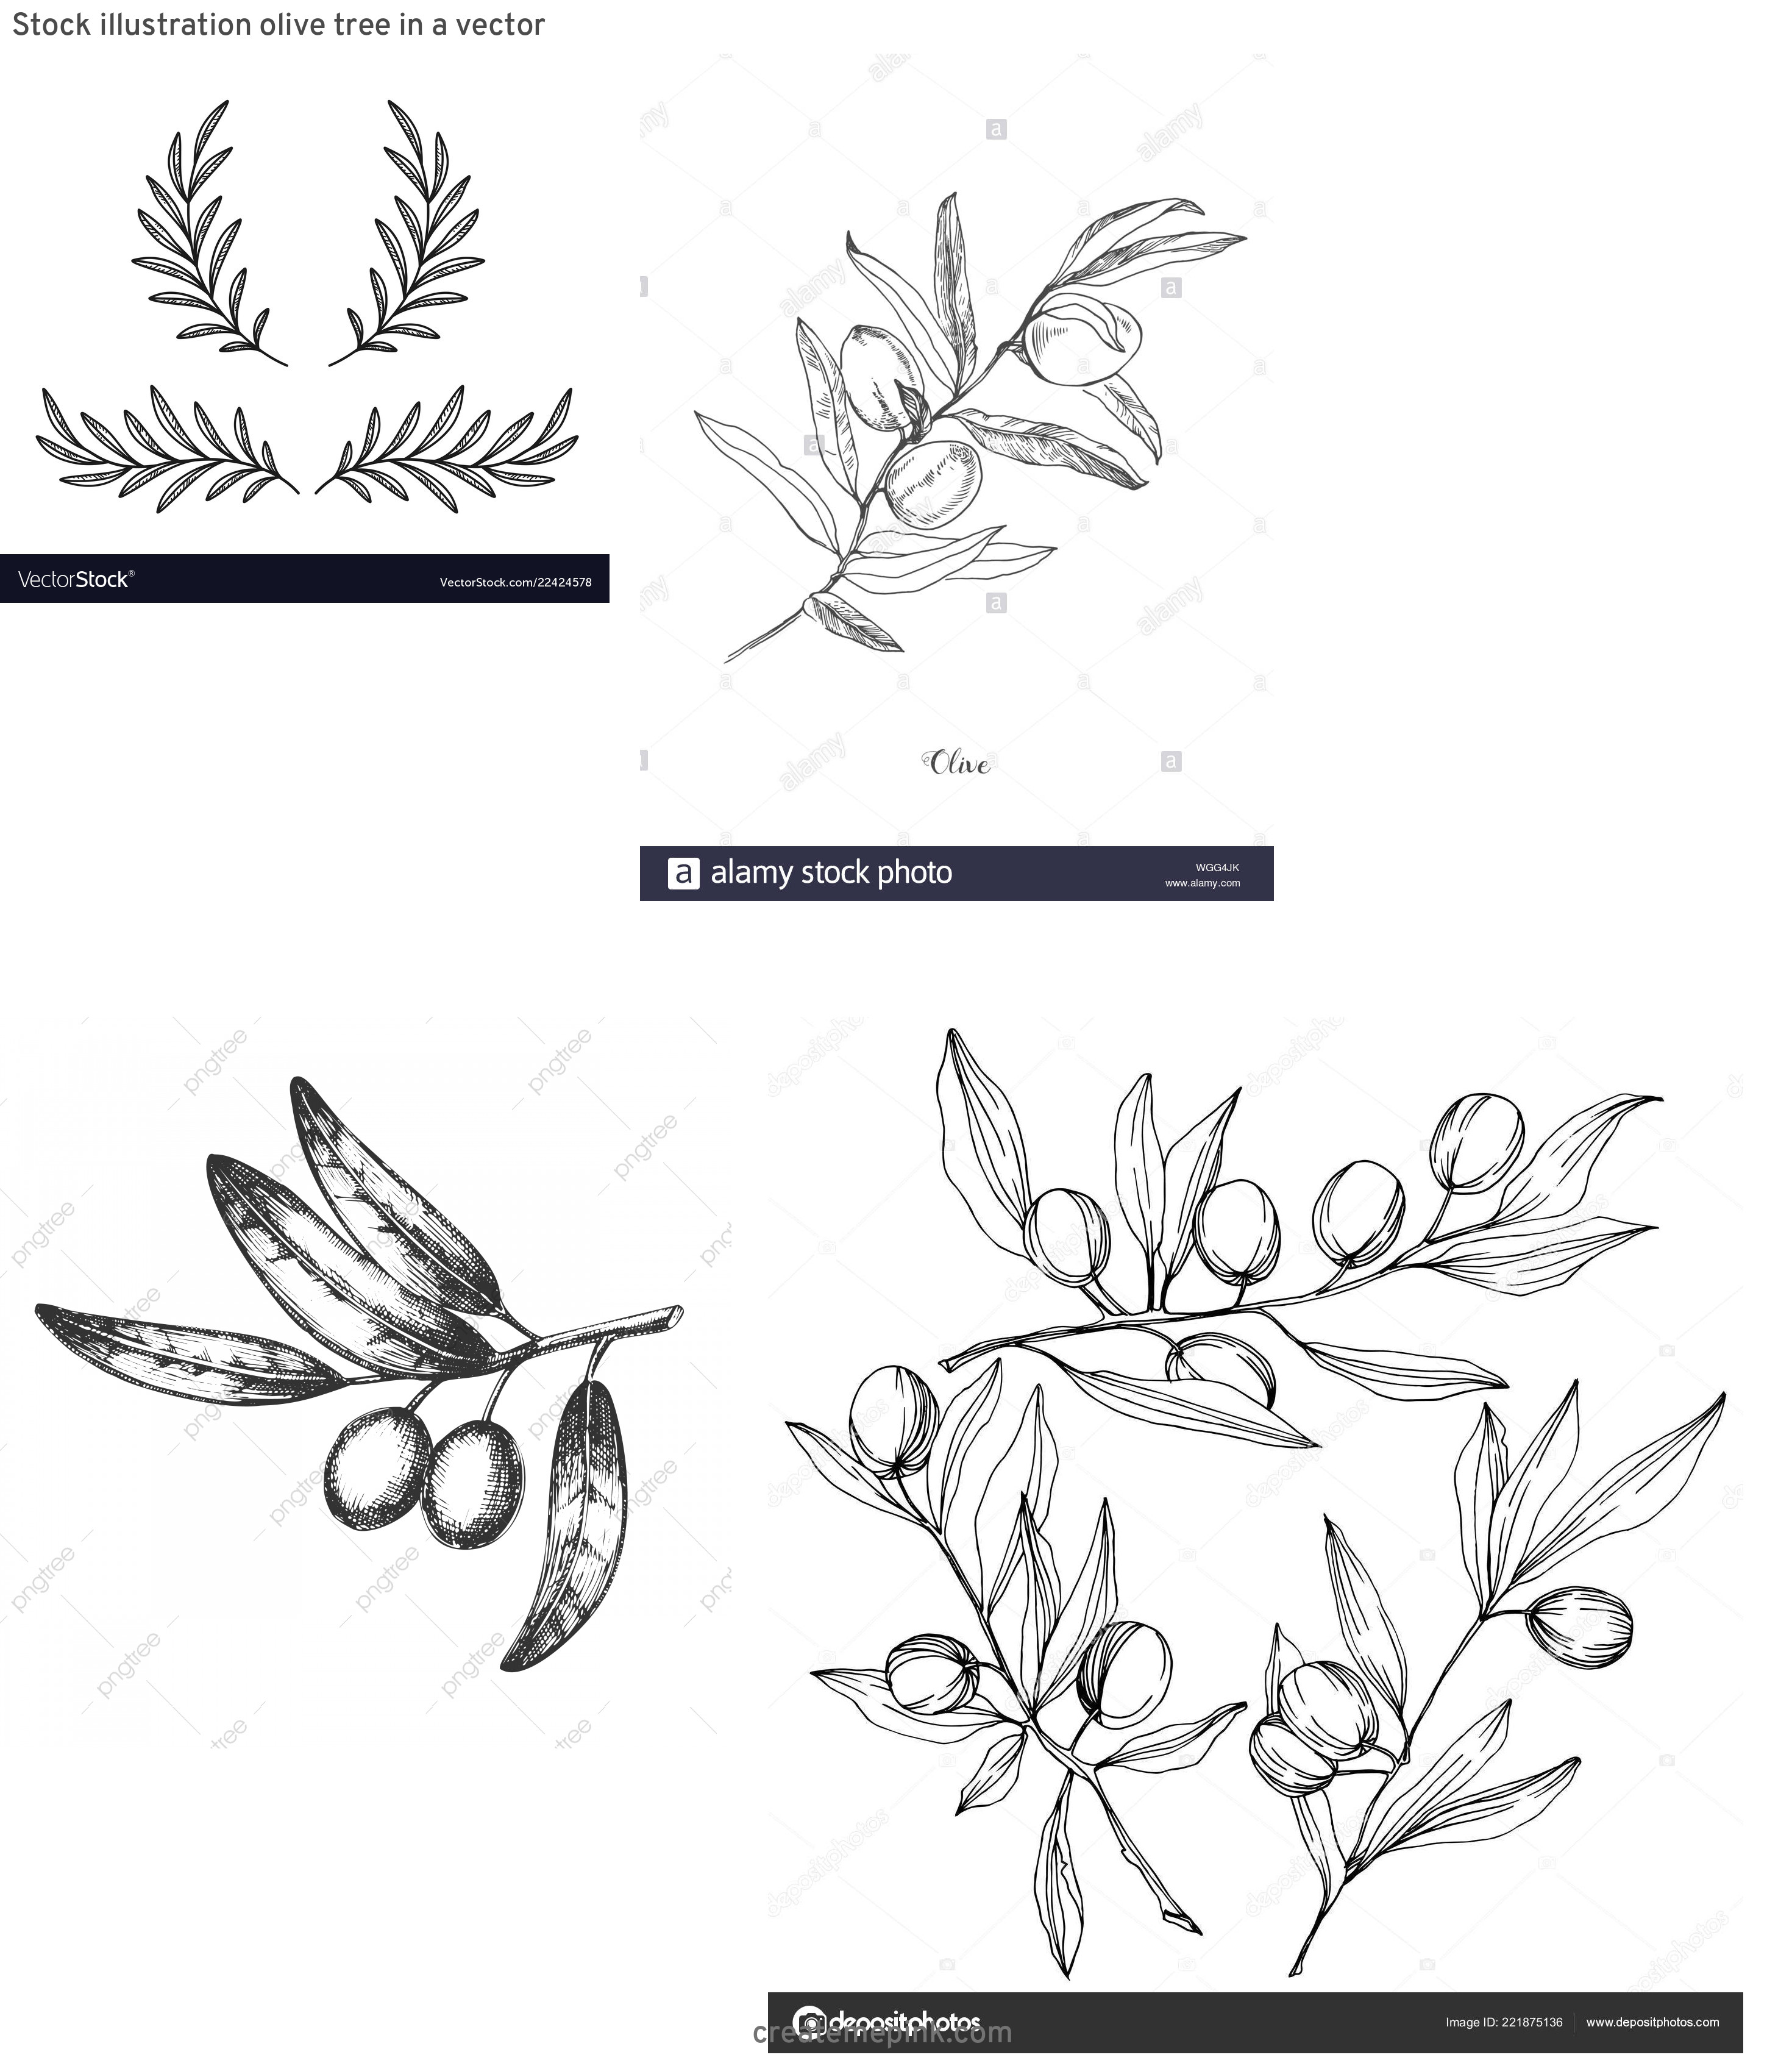 Olive Black And White Vector Leaves: Stock Illustration Olive Tree In A Vector